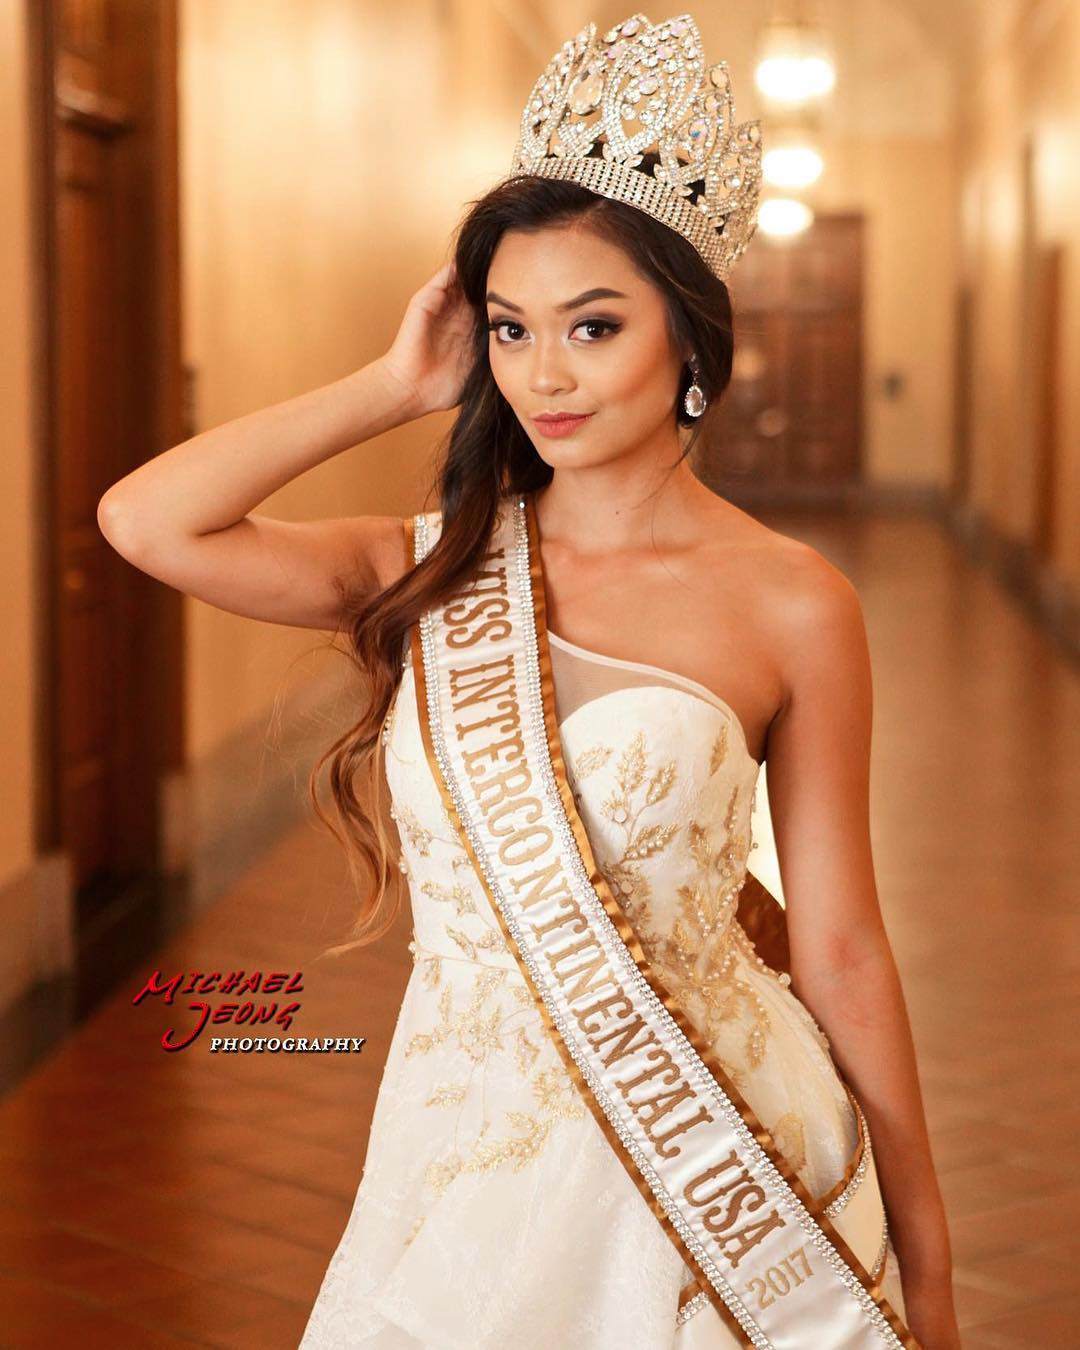 raquel basco, miss international hawaii 2019/miss intercontinental usa 2017. - Página 2 21041266_1764747767157673_3806873069155254272_n